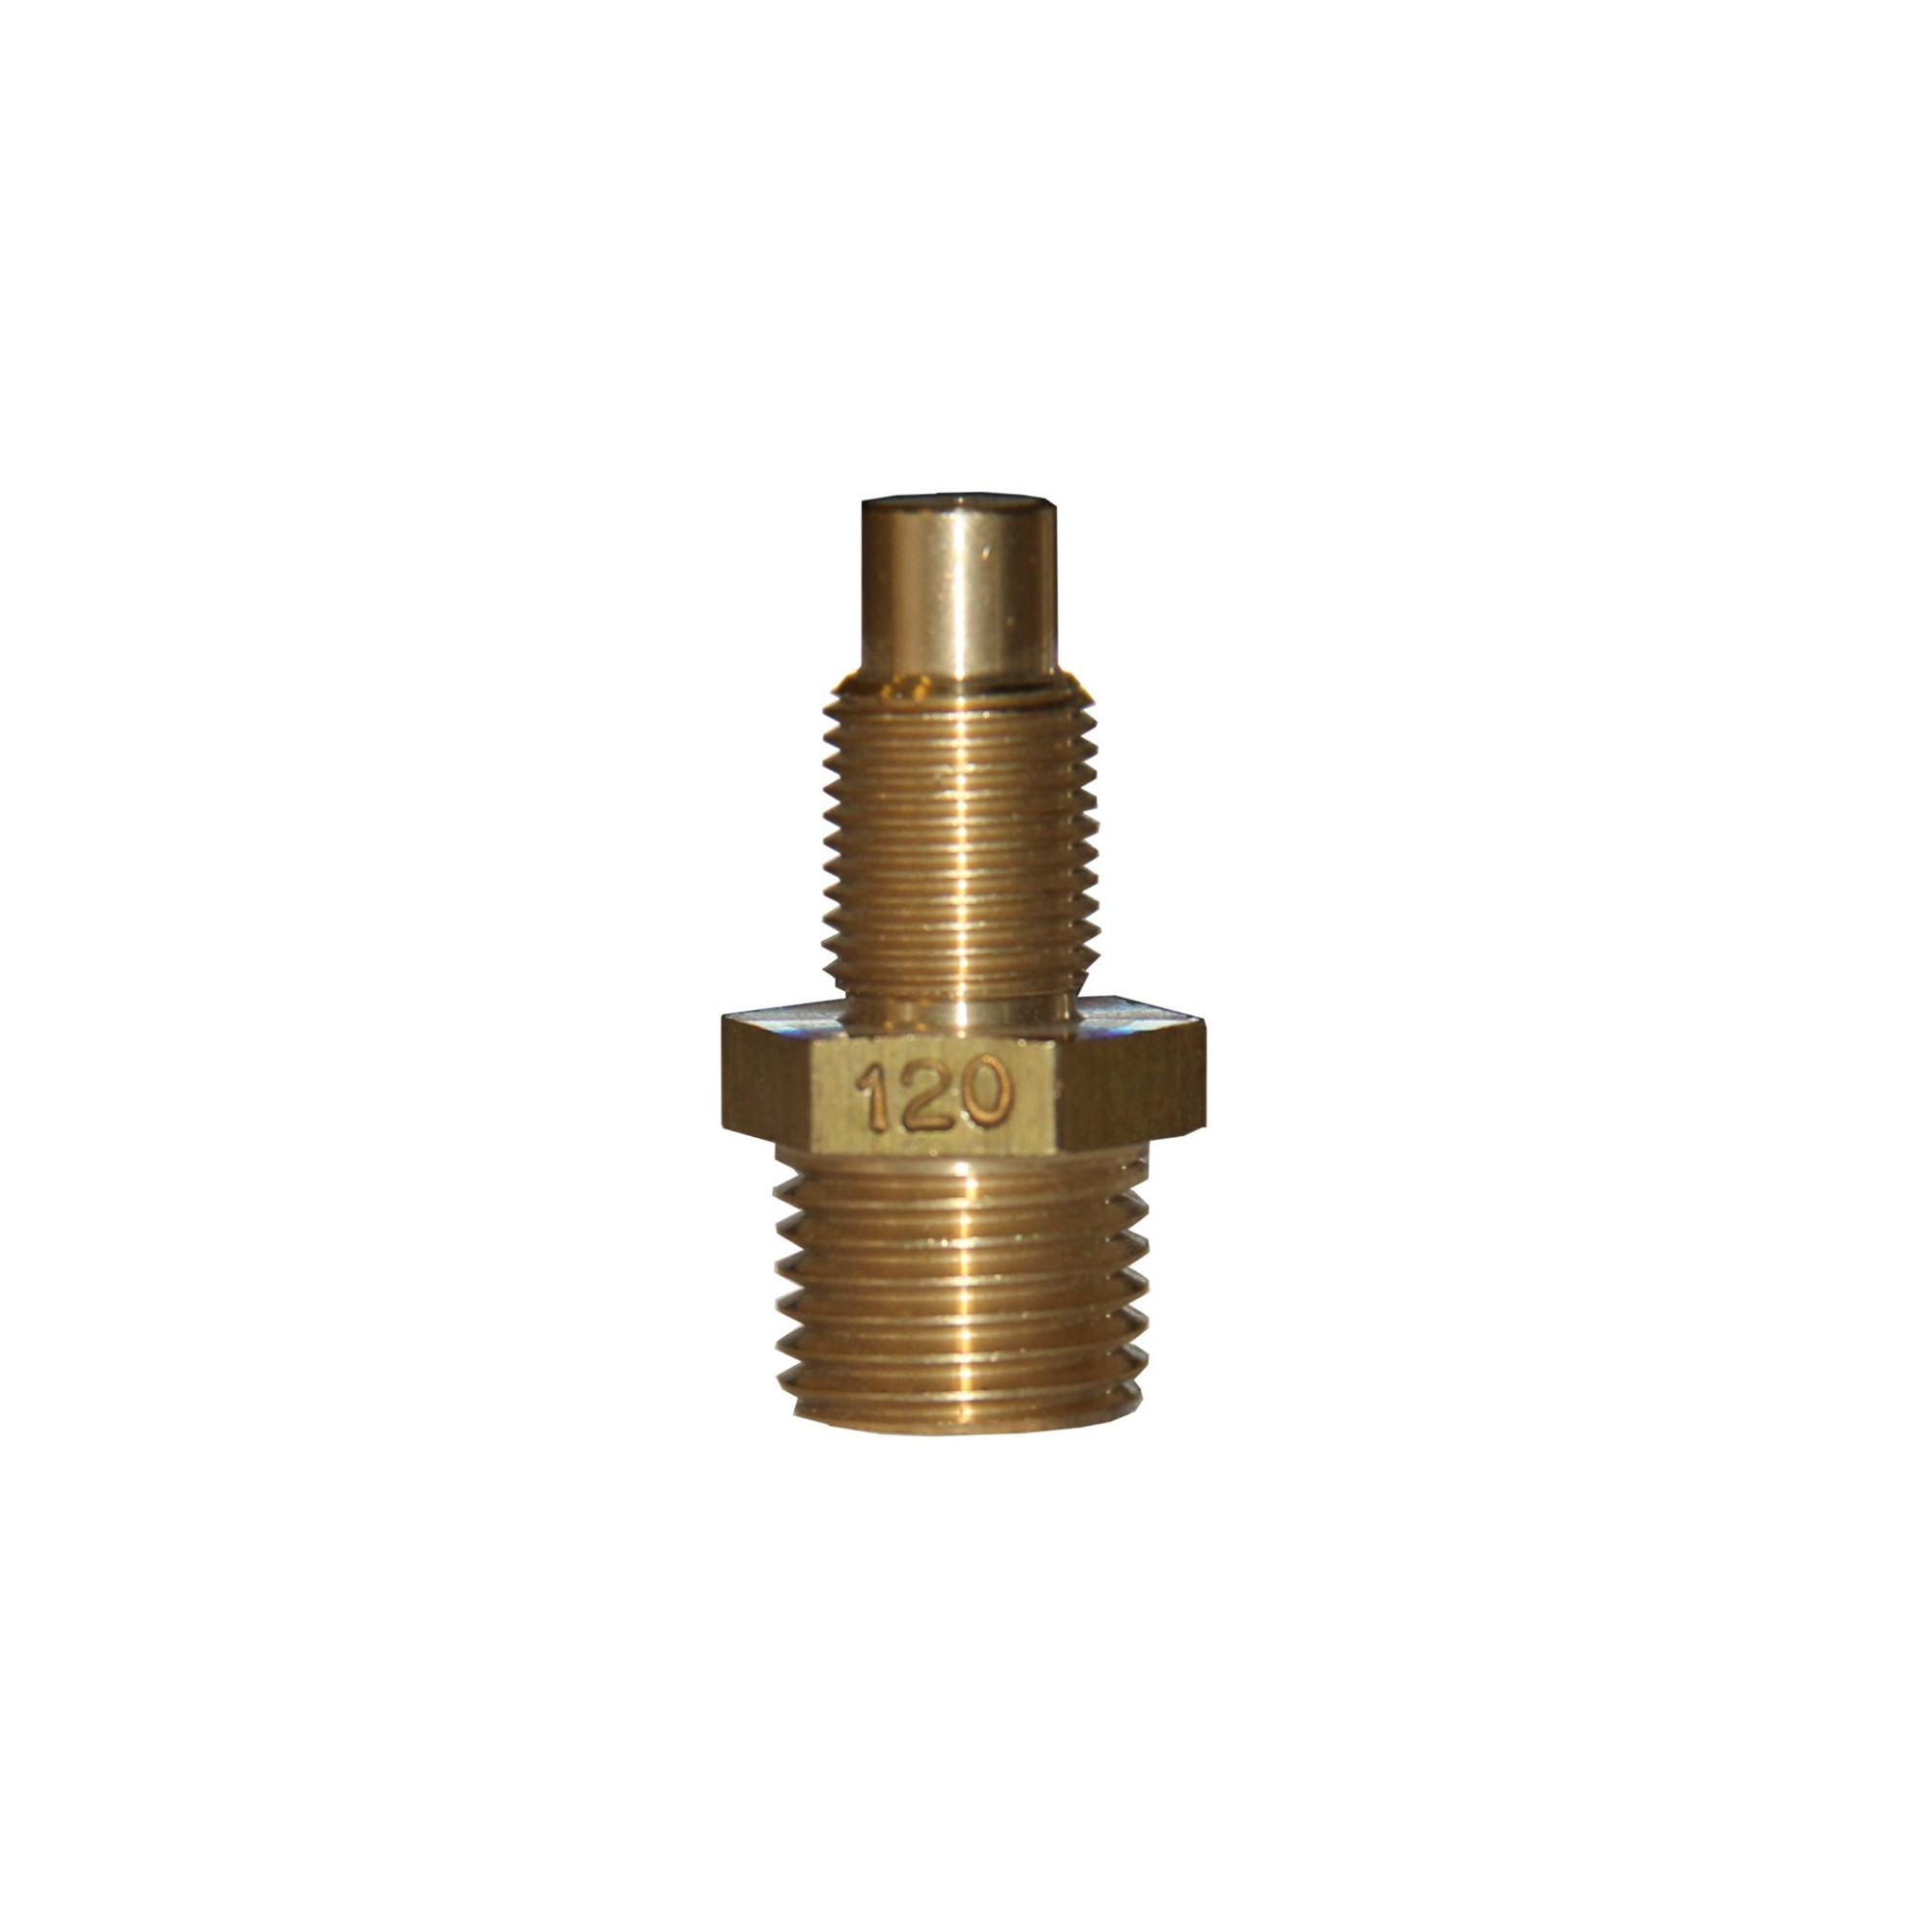 HEAD INJECTOR PROPANE: 120 × 18VB